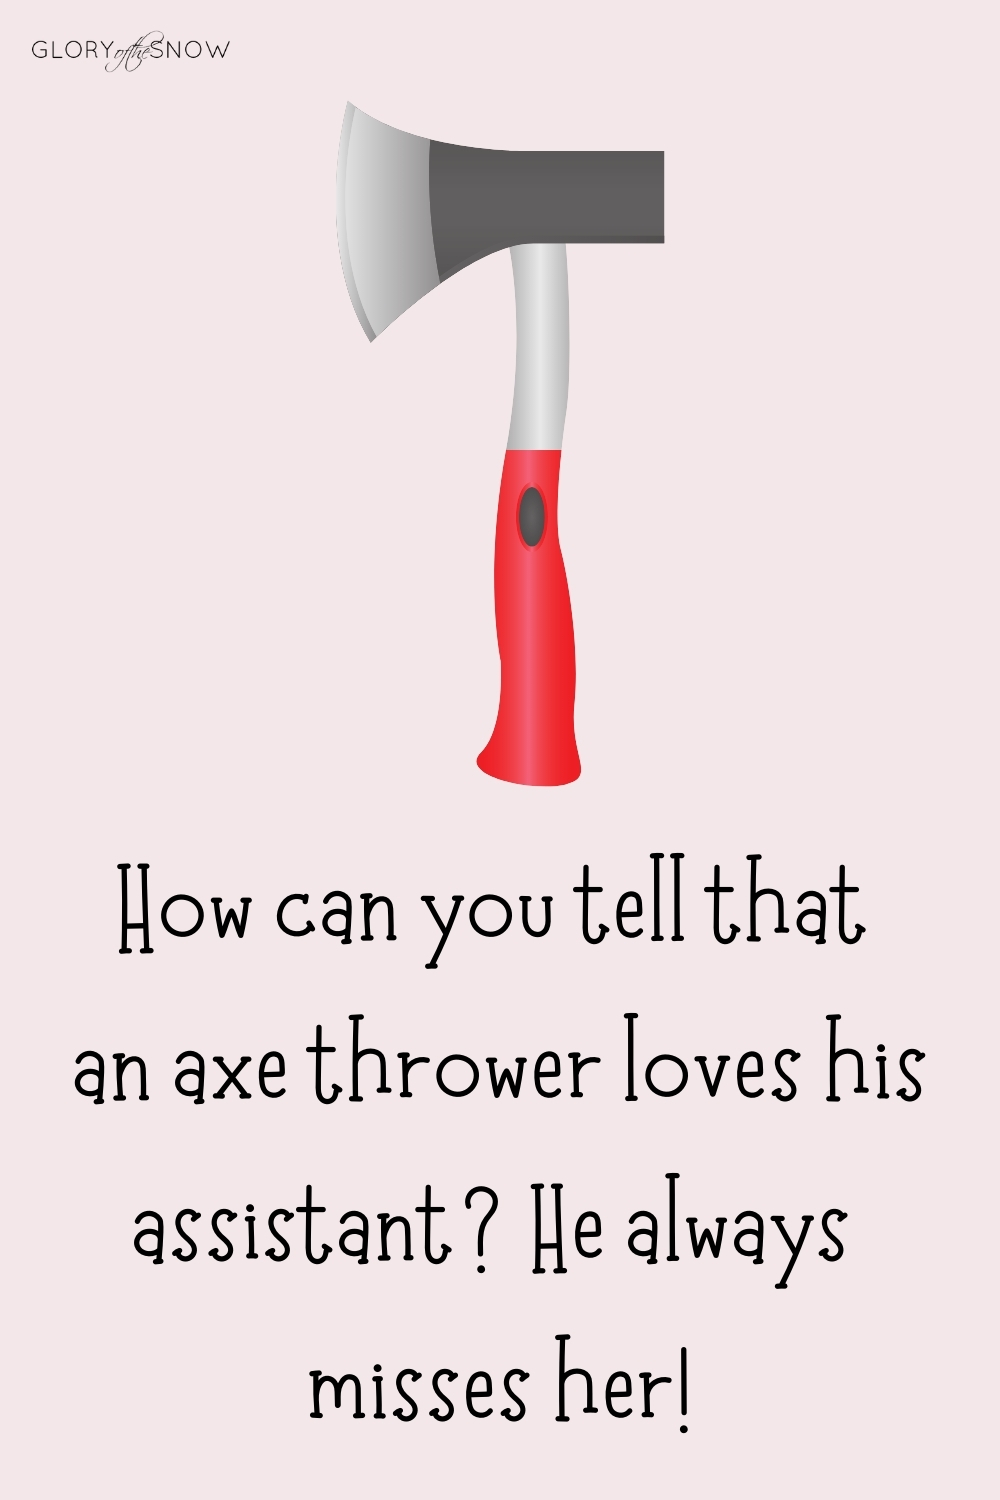 THE BEST AXE PUNS AND JOKES